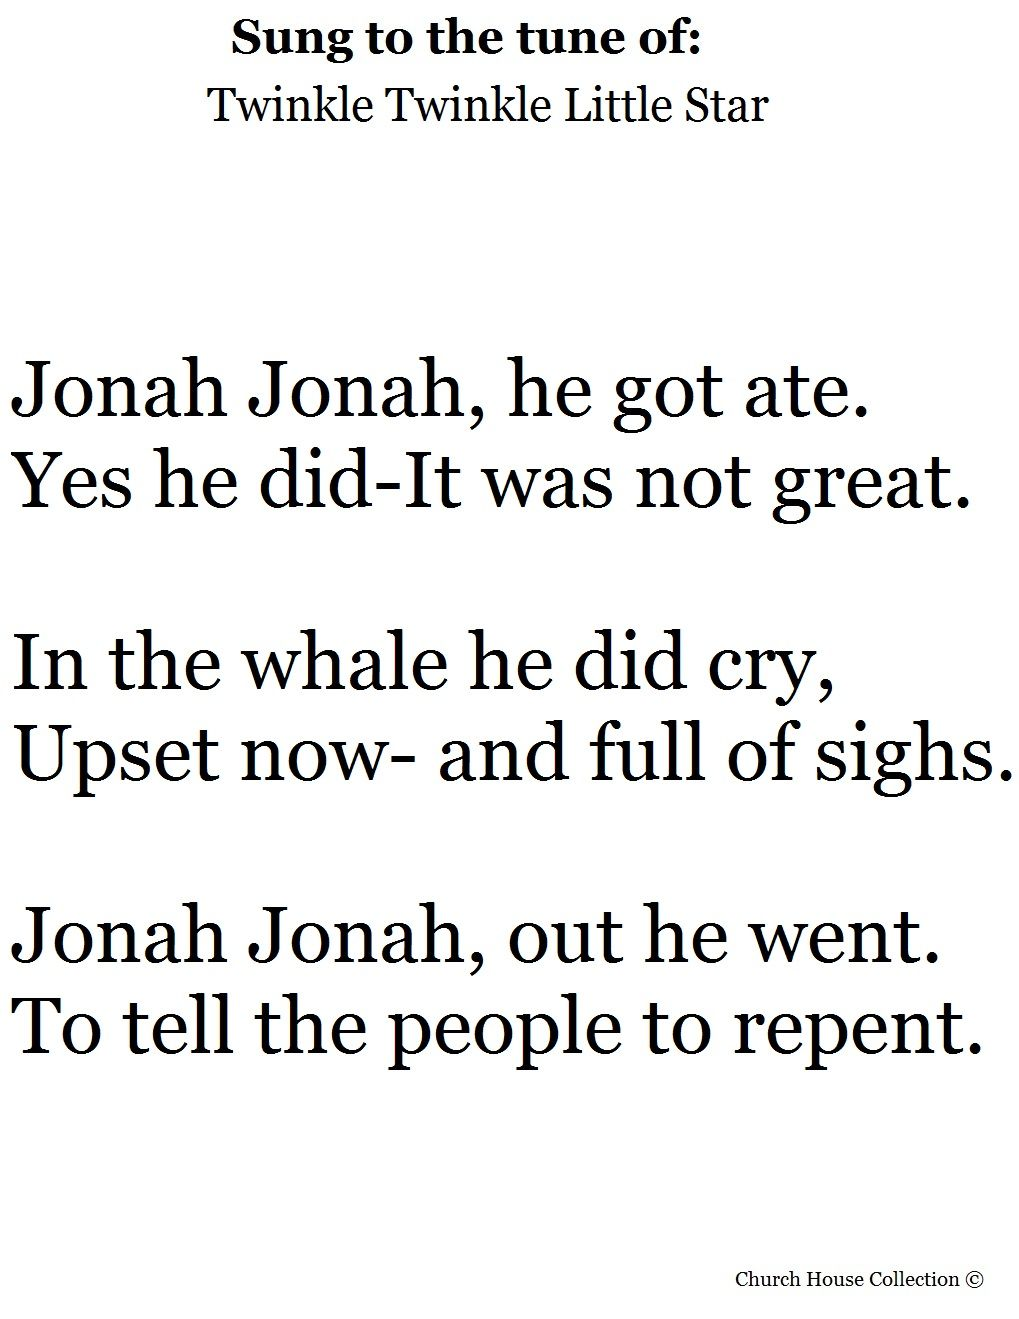 Jonah and the Whale Song To the tune of Twinkle twinkle little star ...